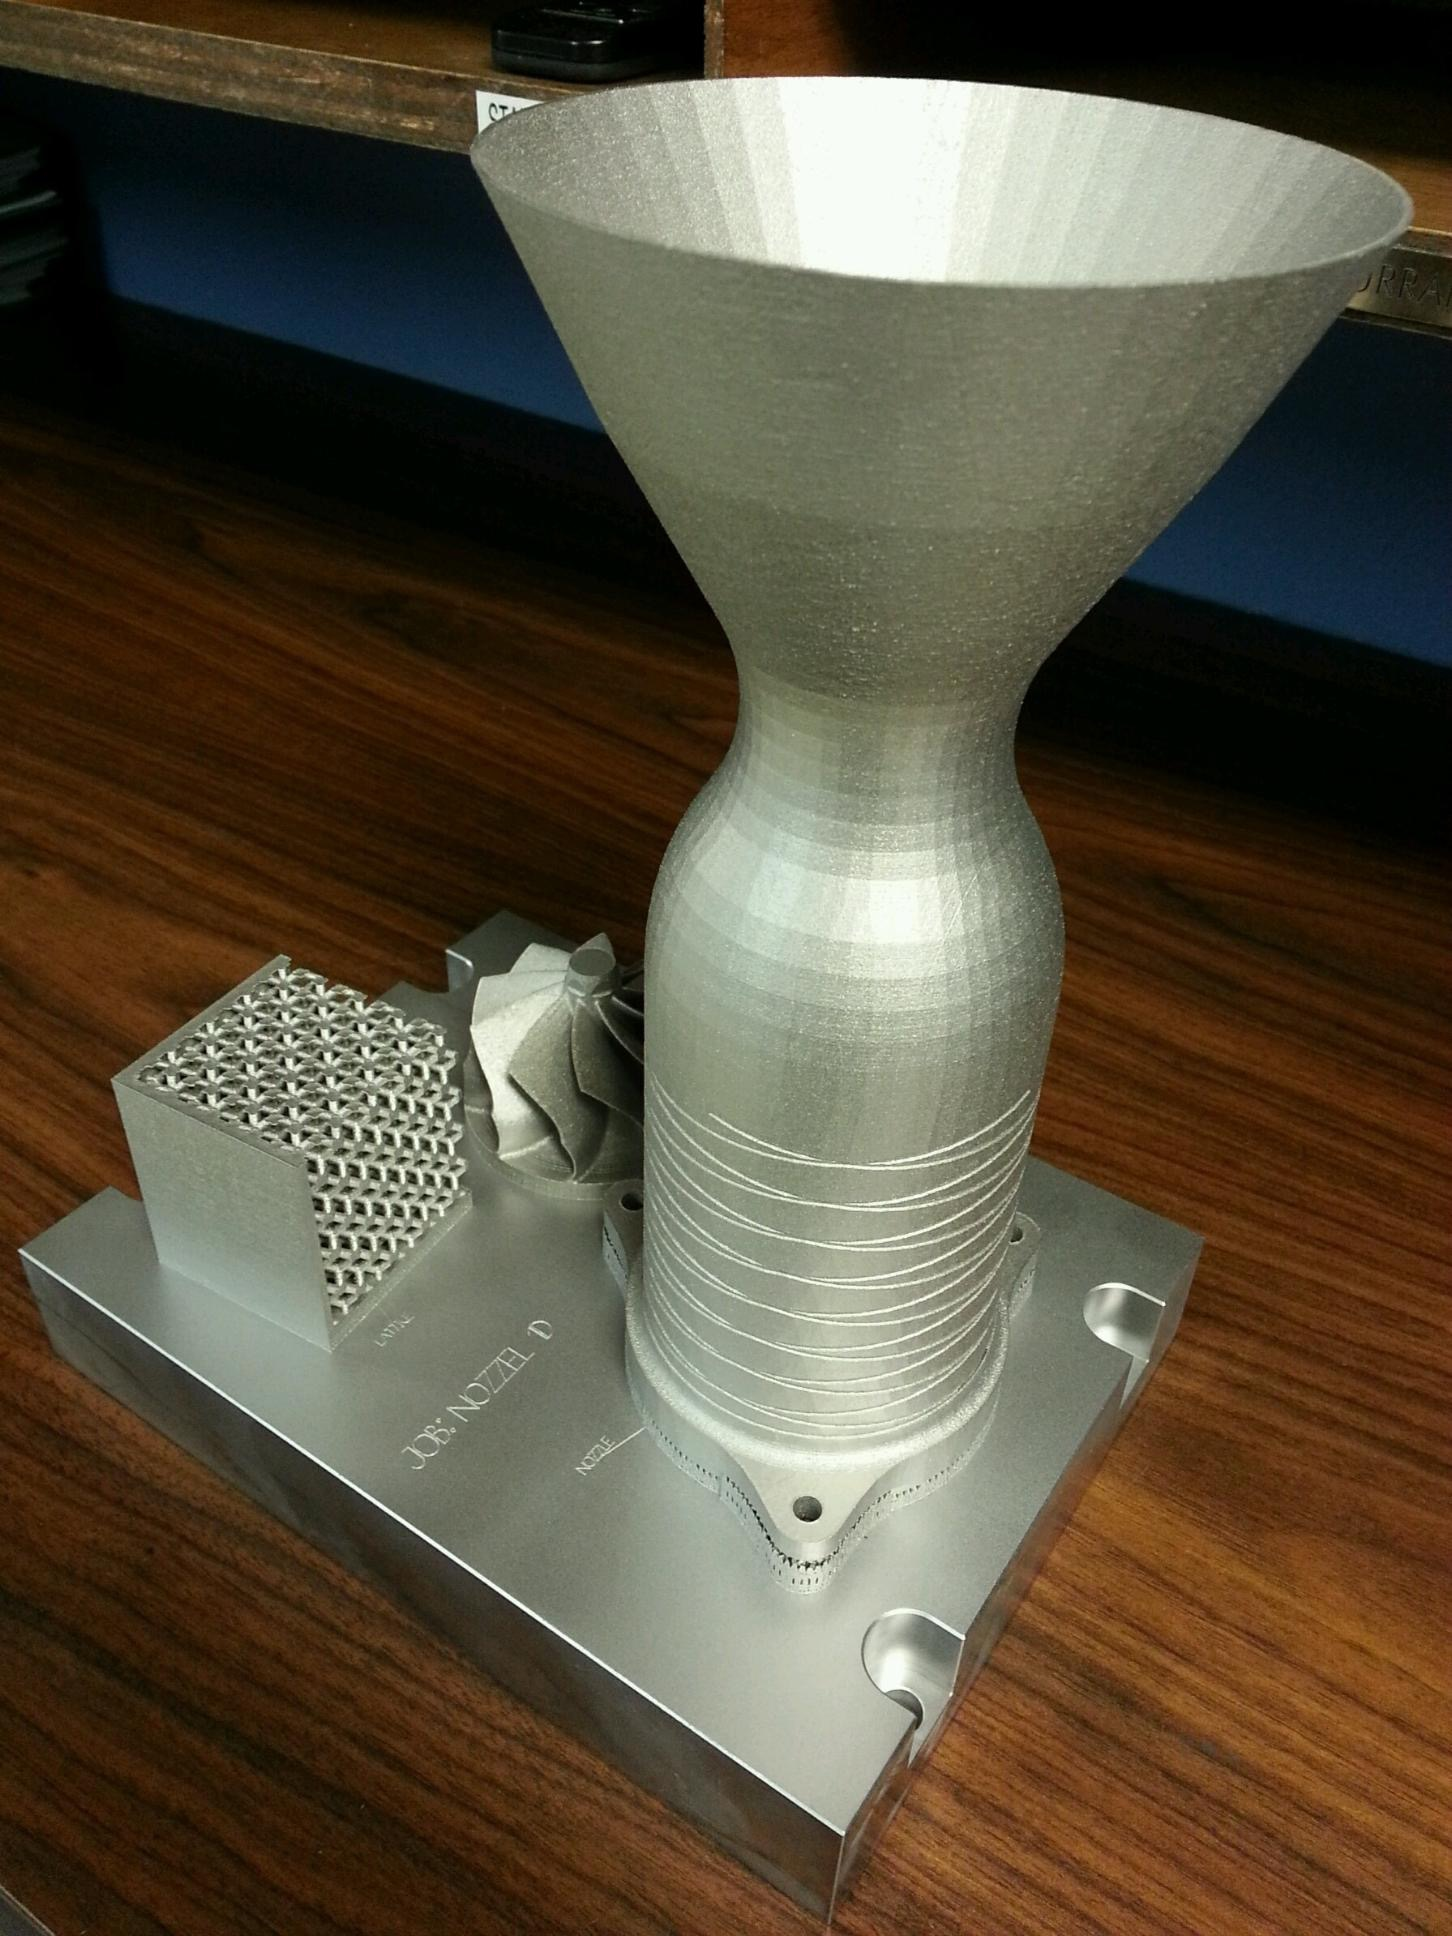 3d Metal Printing >> Need A 3D Metal Printing Service? Answer These 4 Essential Questions First - Metal Technology ...